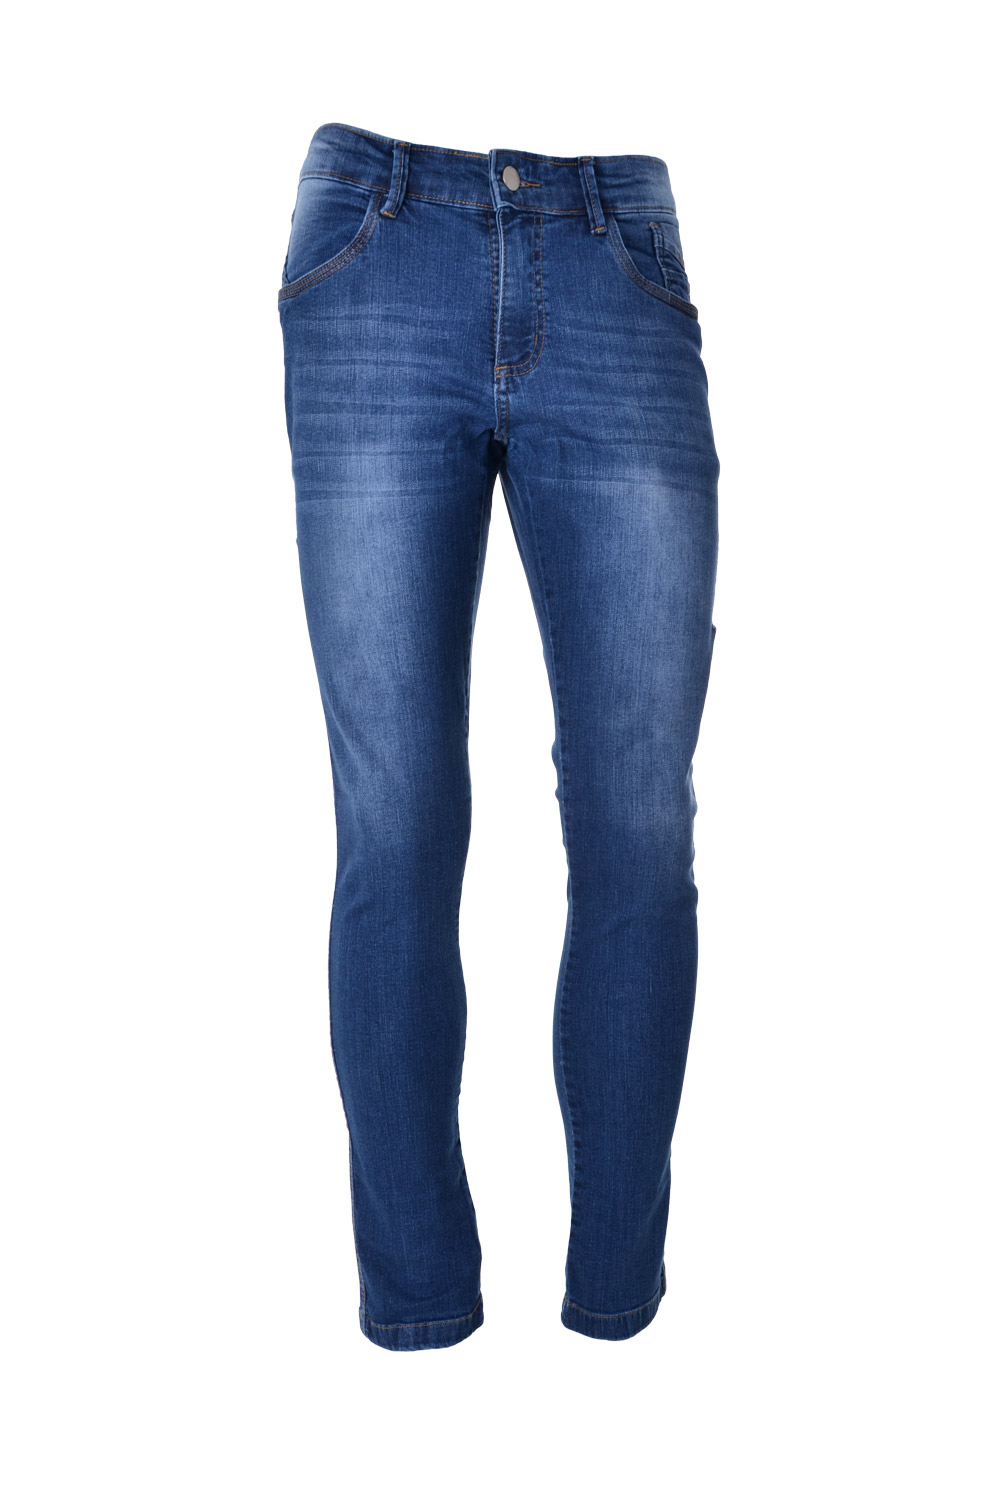 CALÇA JEANS BLUES ALGODAO & ELASTANO STRETCH STONED DESGASTE